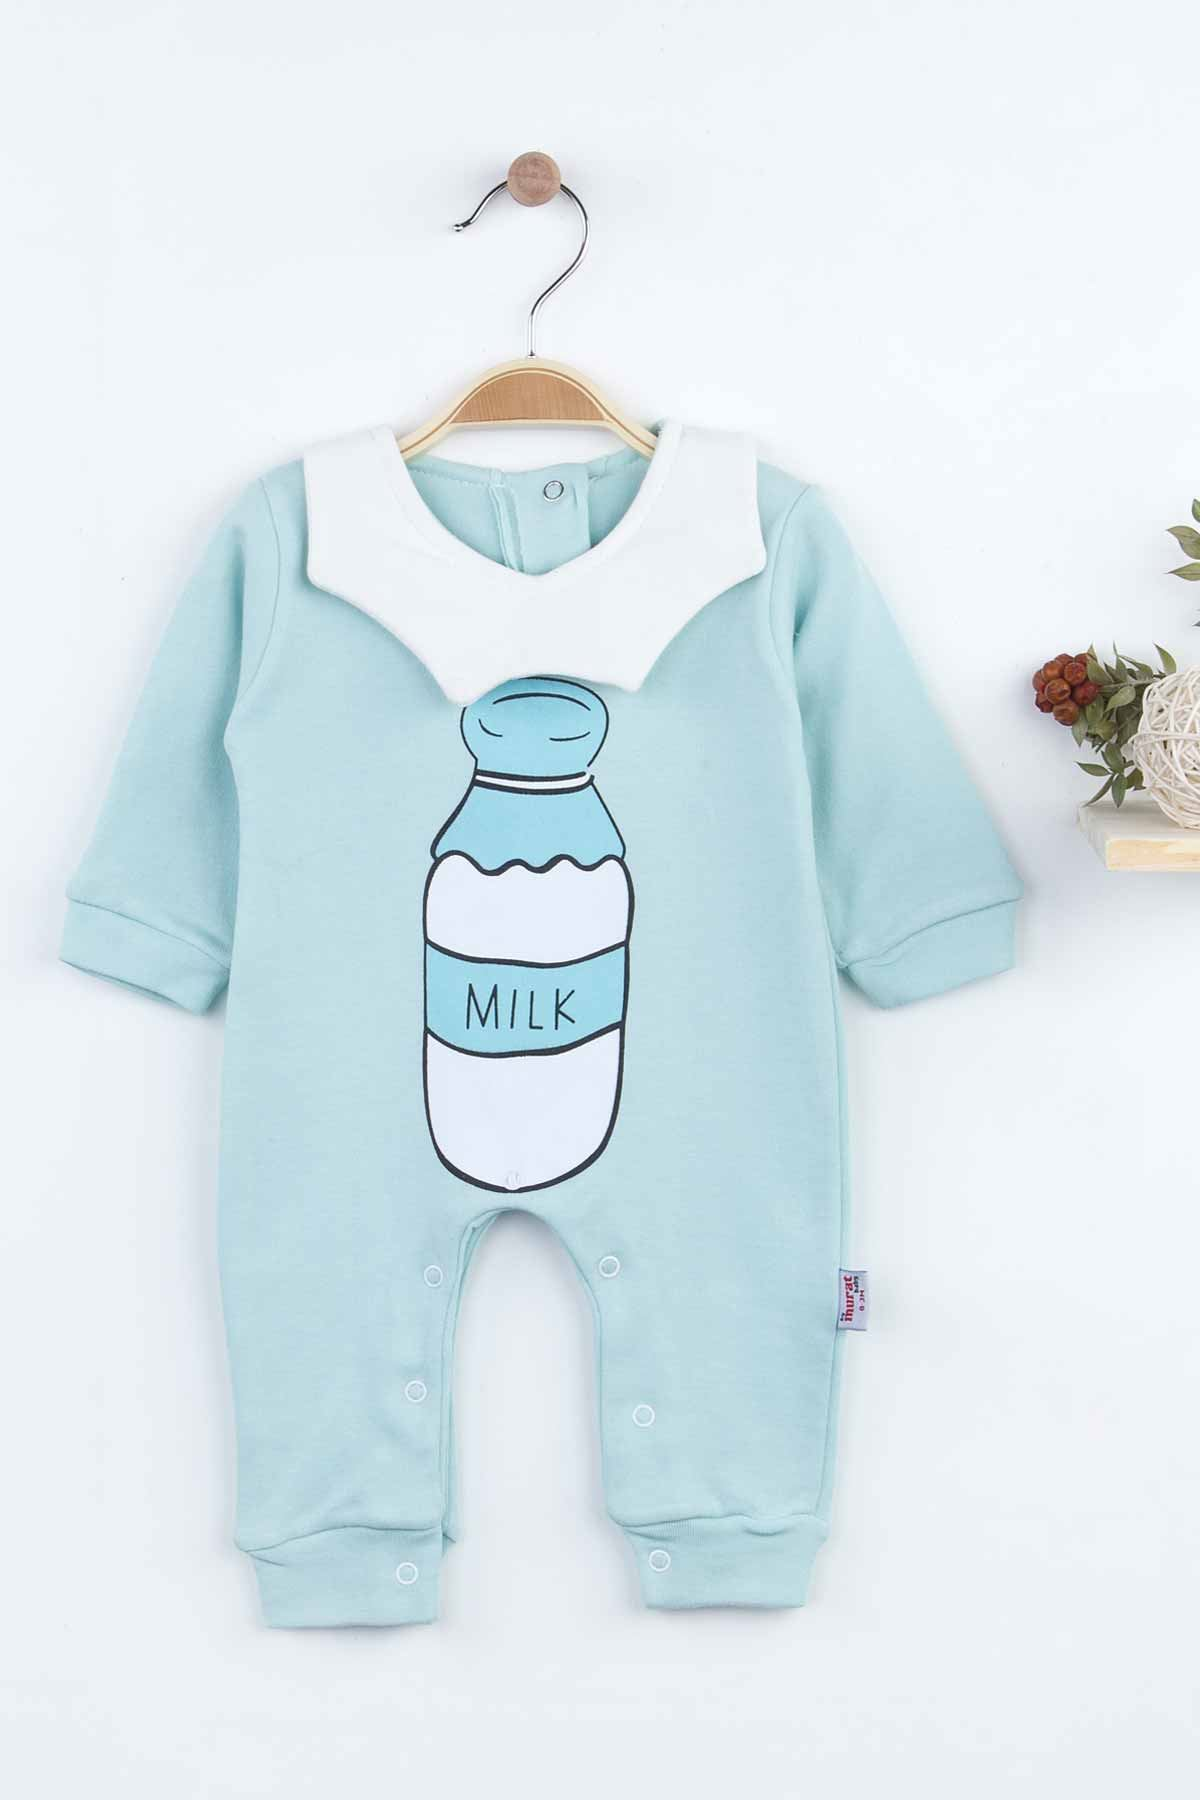 Green Milk Baby Boy Rompers Fashion 2021 New Season Style Babies Clothes Outfit Cotton Comfortable Underwear for Boys Baby Models